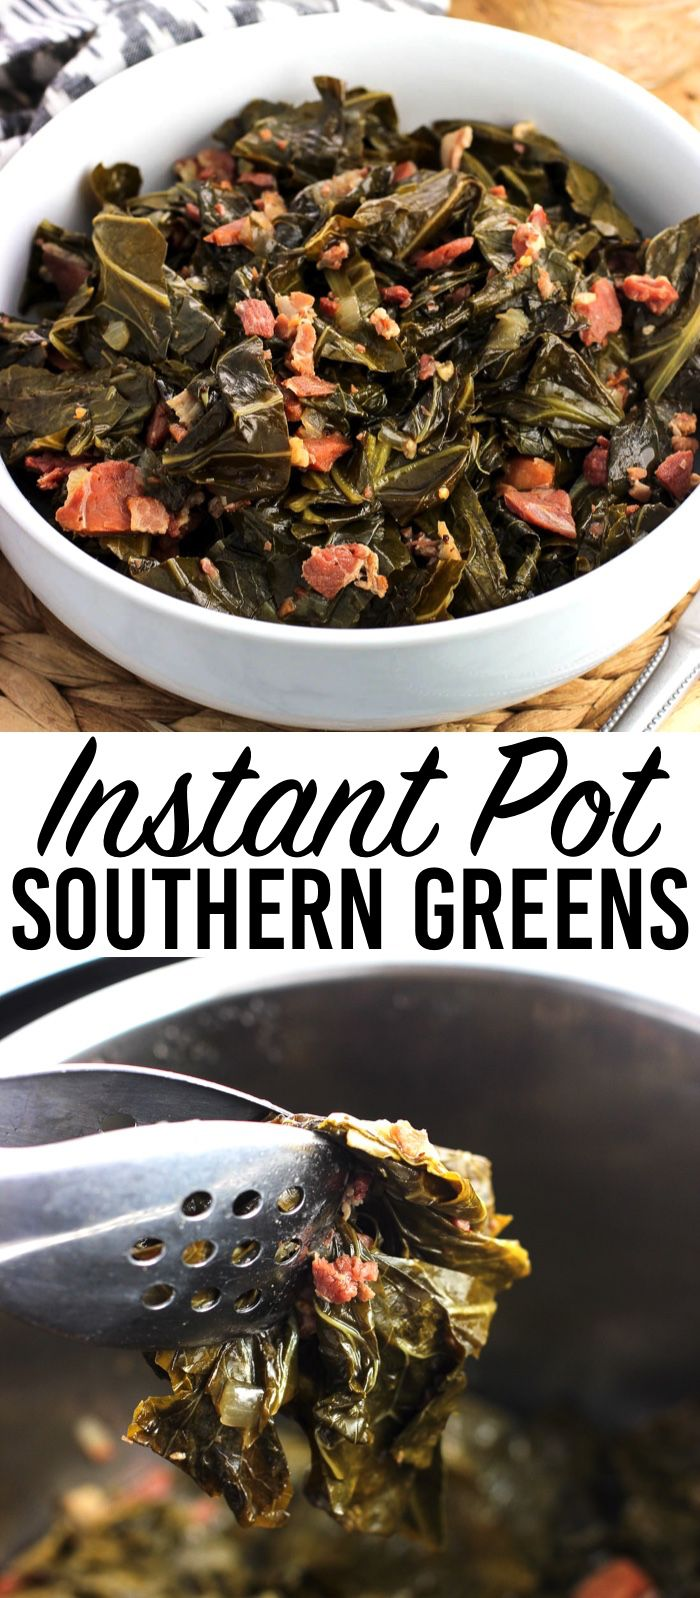 Instant Pot collard greens are a Southern-inspired side dish made much quicker i…